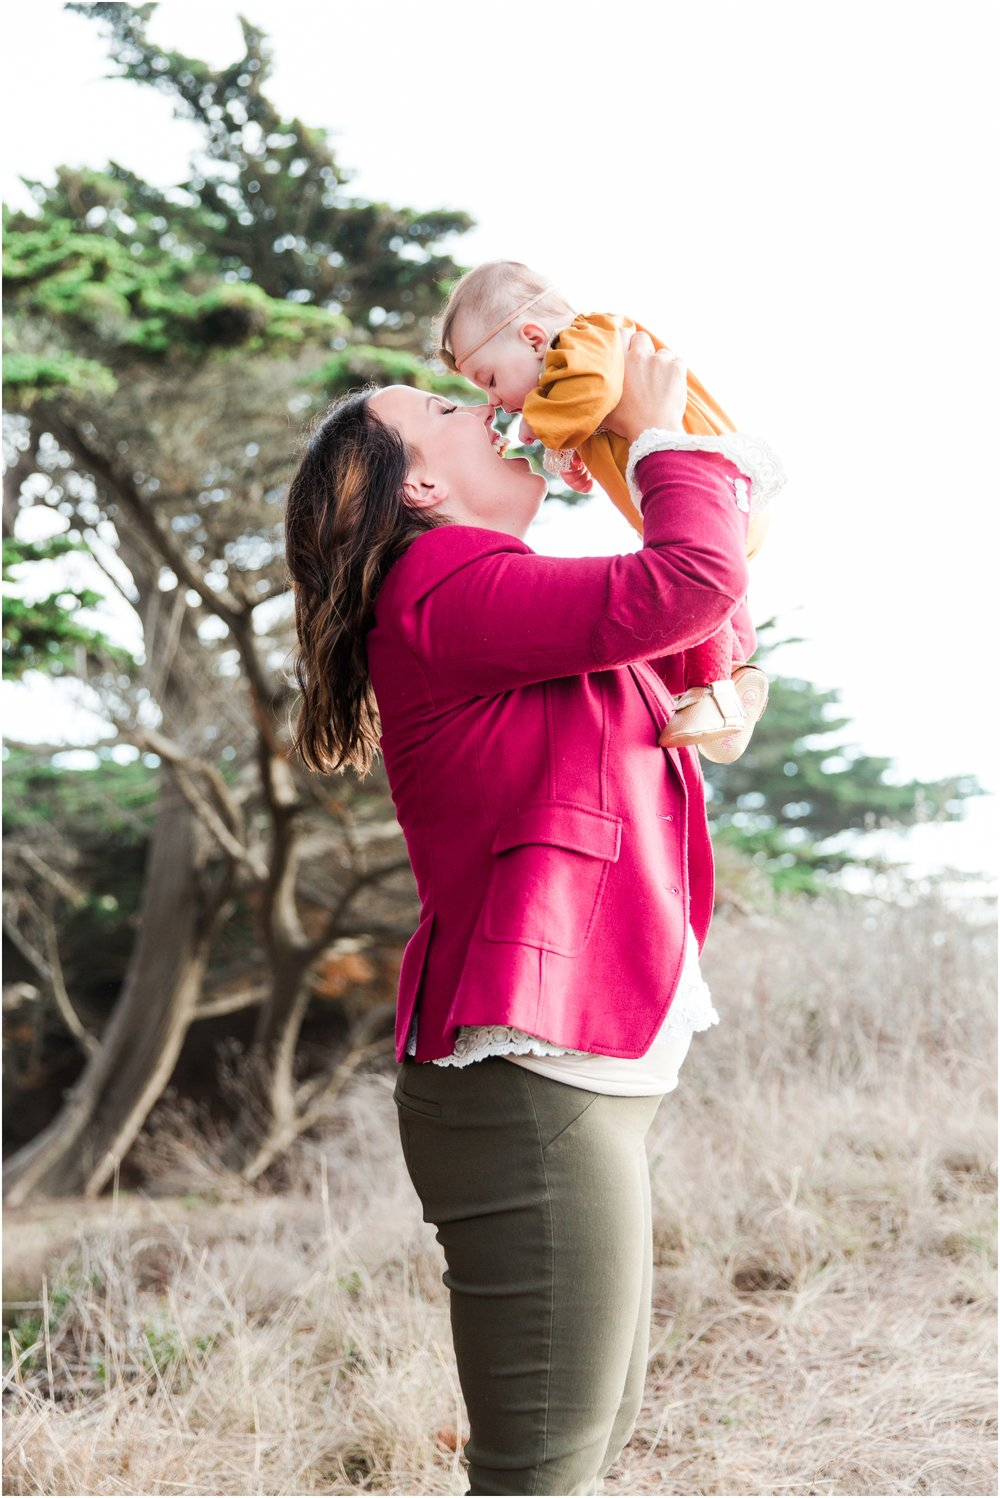 Half Moon Bay family photos by Briana Calderon Photography_0590.jpg